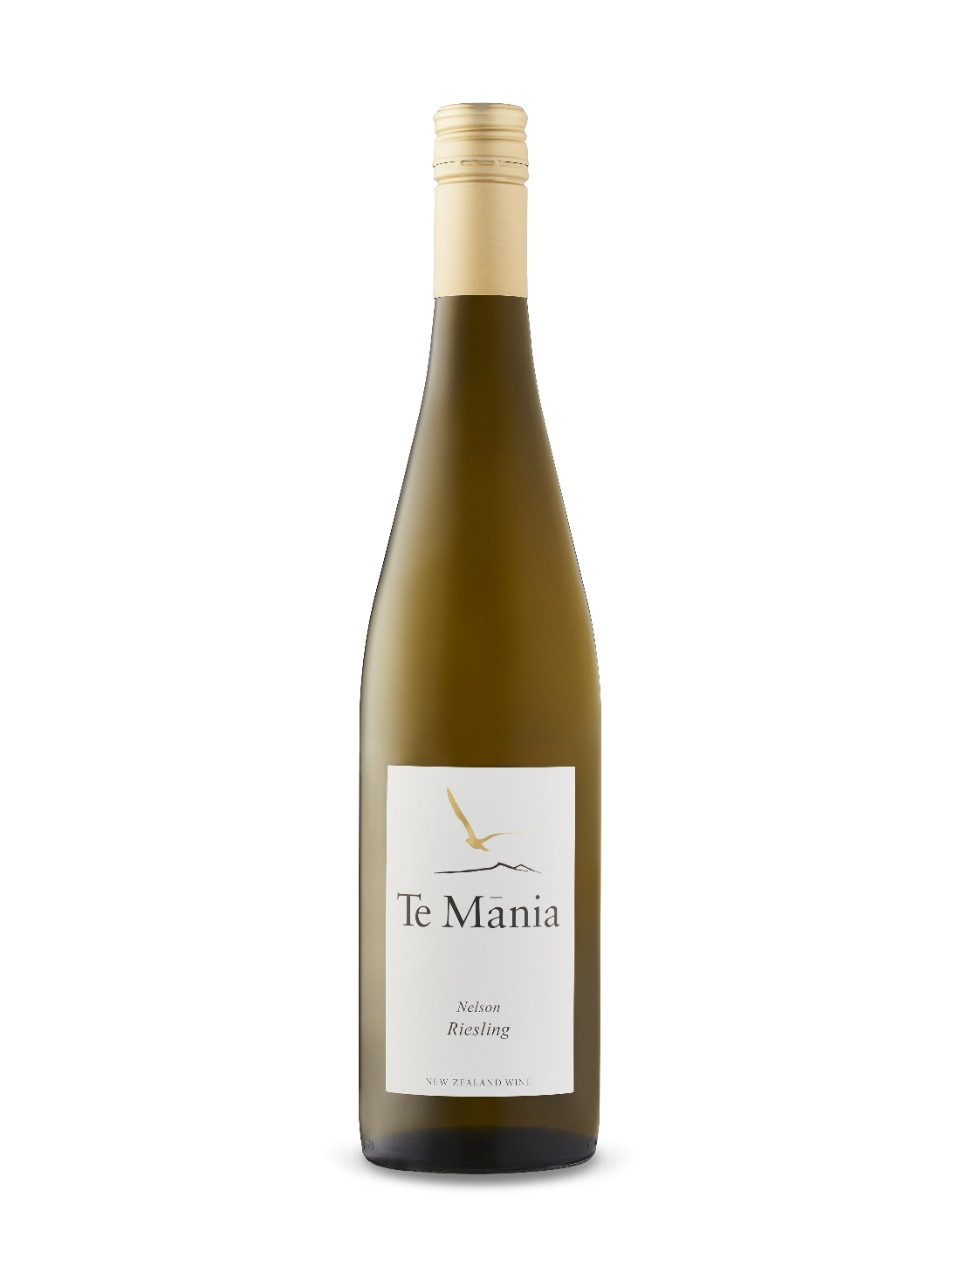 Riesling Nelson Te Mania 2016